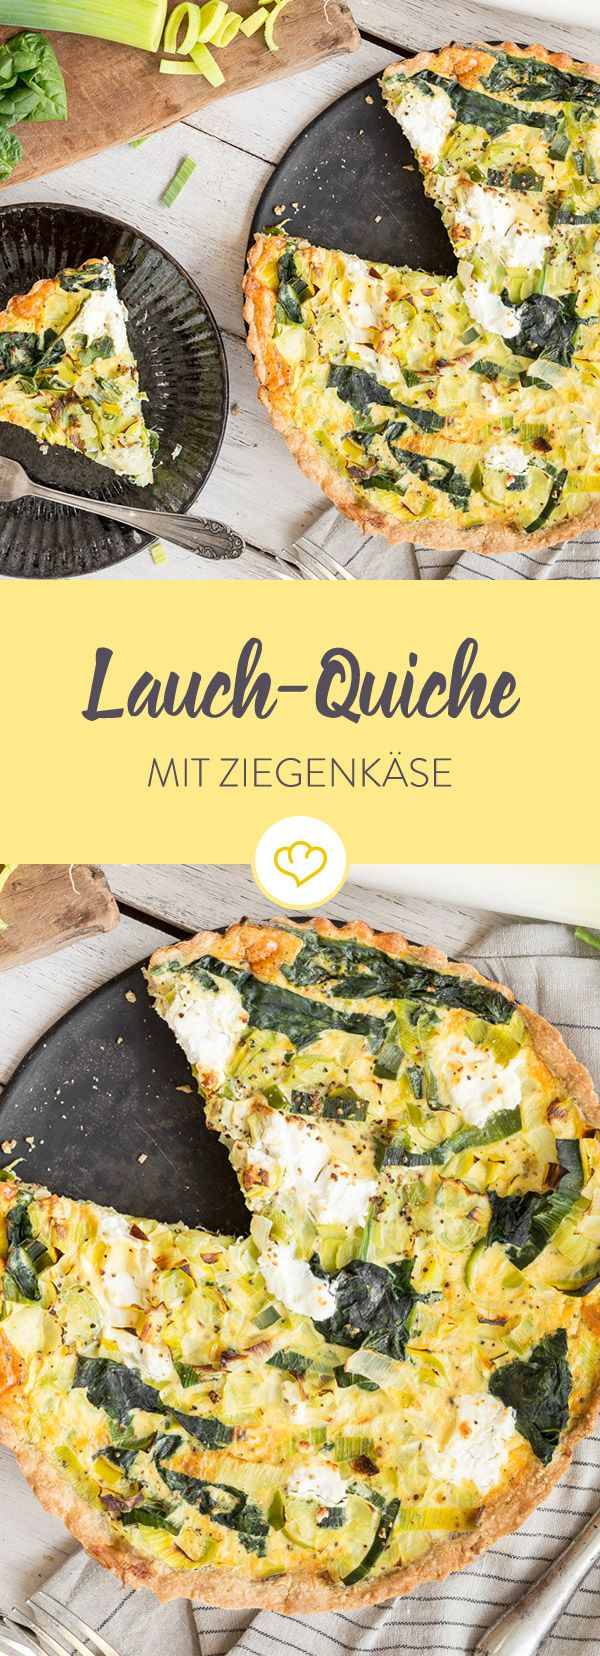 Photo of Leek quiche with spinach and goat cheese